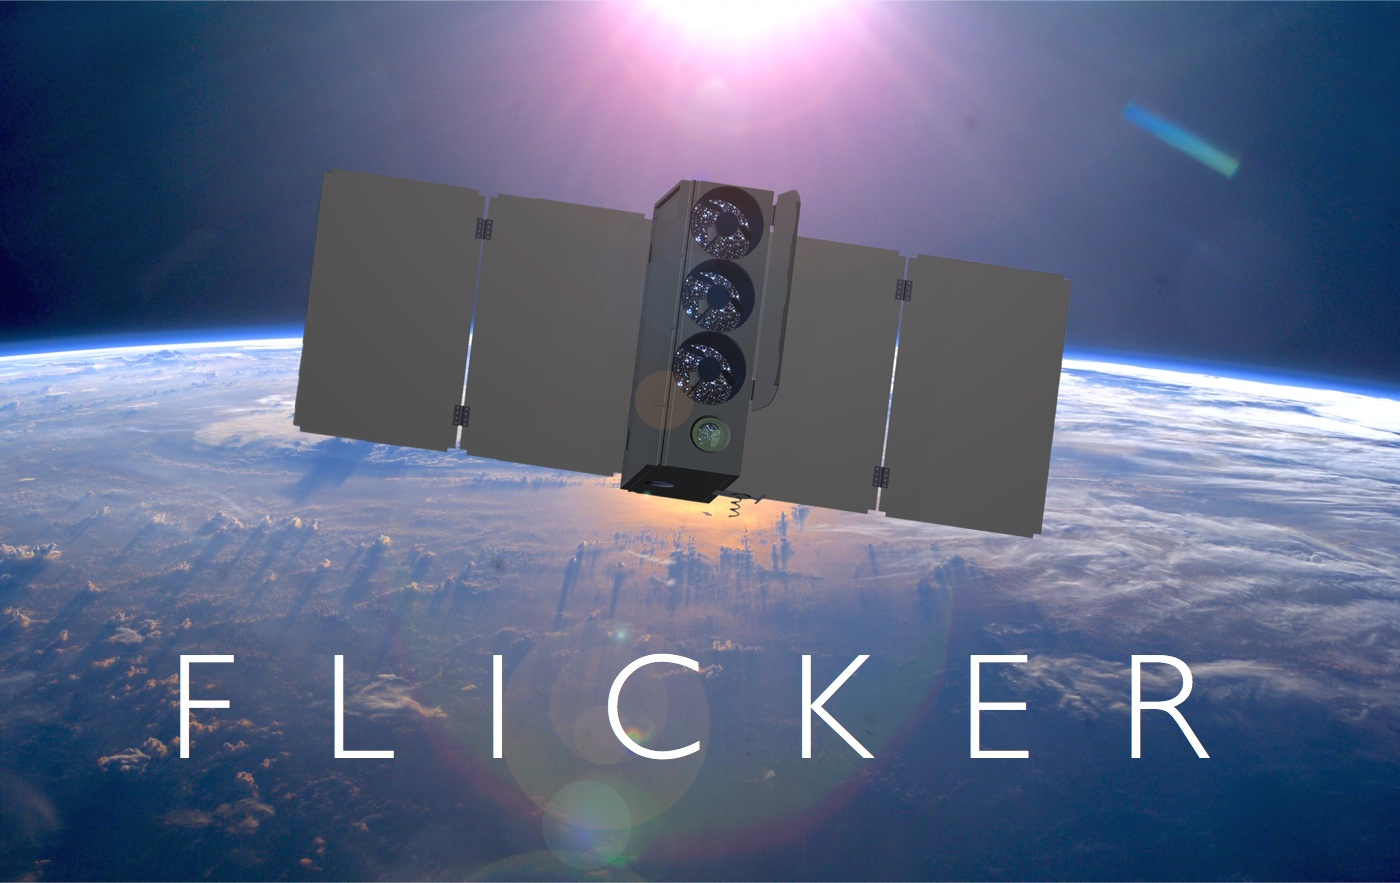 The Flicker spacecraft in Earth orbit. If flown, Flicker will be the first dedicated space-based occultation observatory.